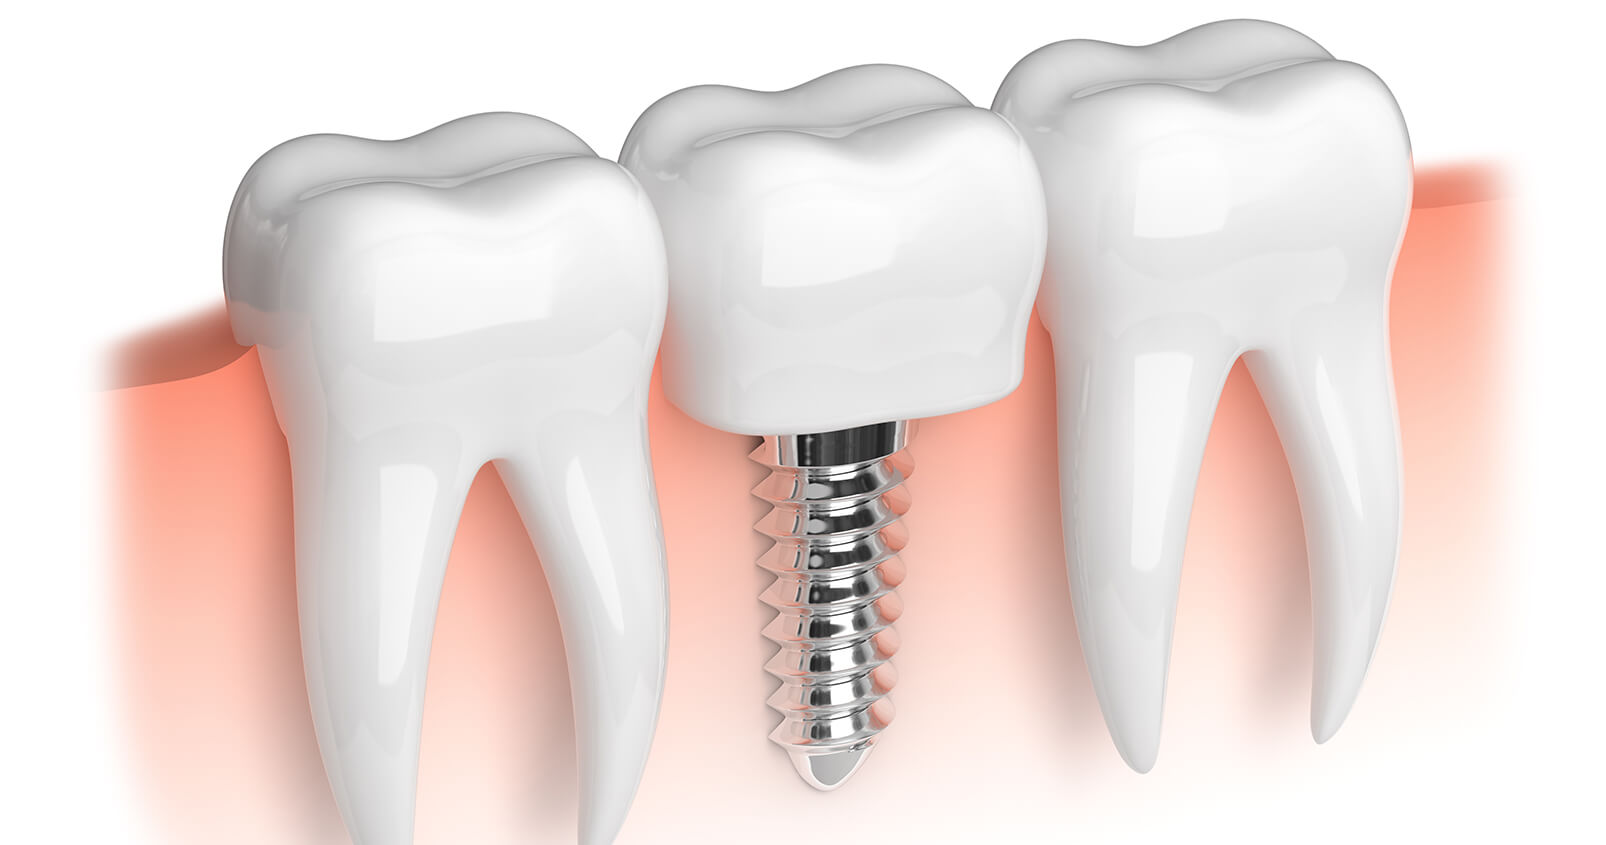 Where Can I Find a Dentist for Implants in Azusa, CA Area